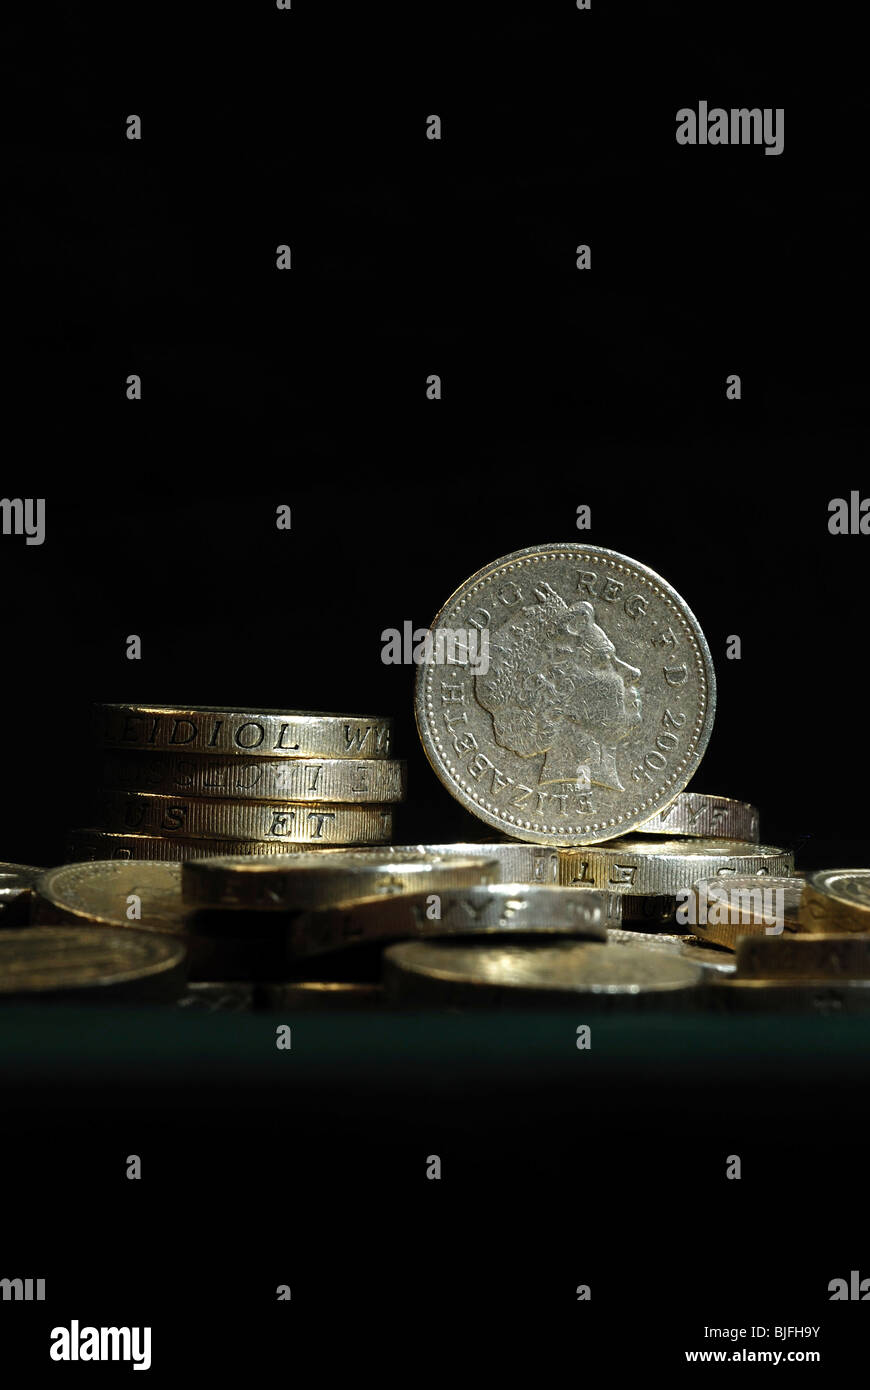 One pound coins. February 2010 - Stock Image